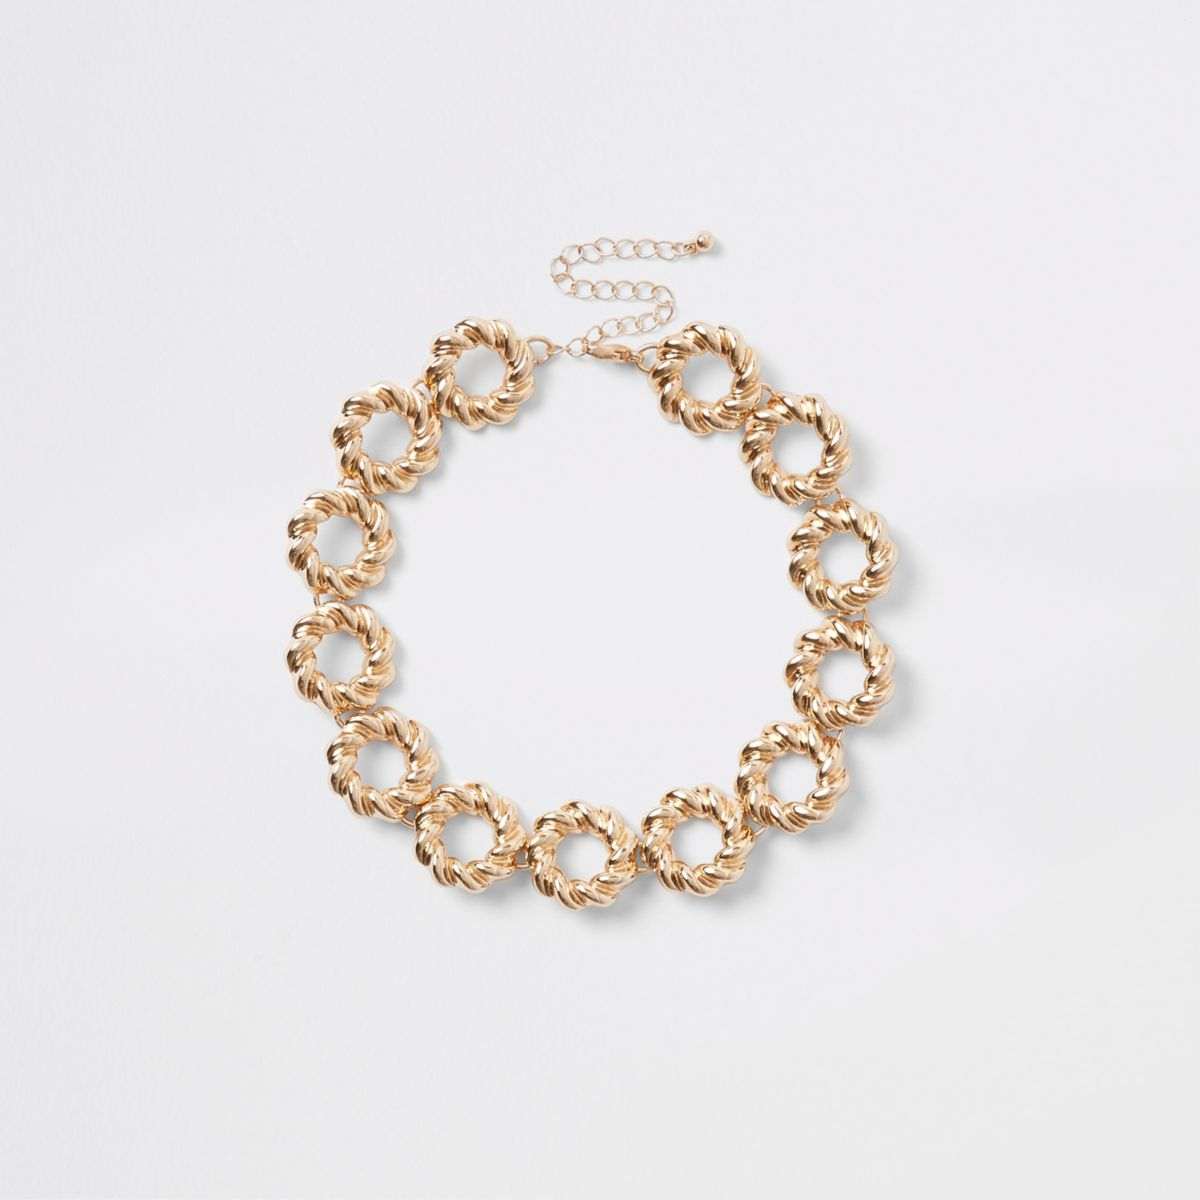 Gold tone twisted ring choker